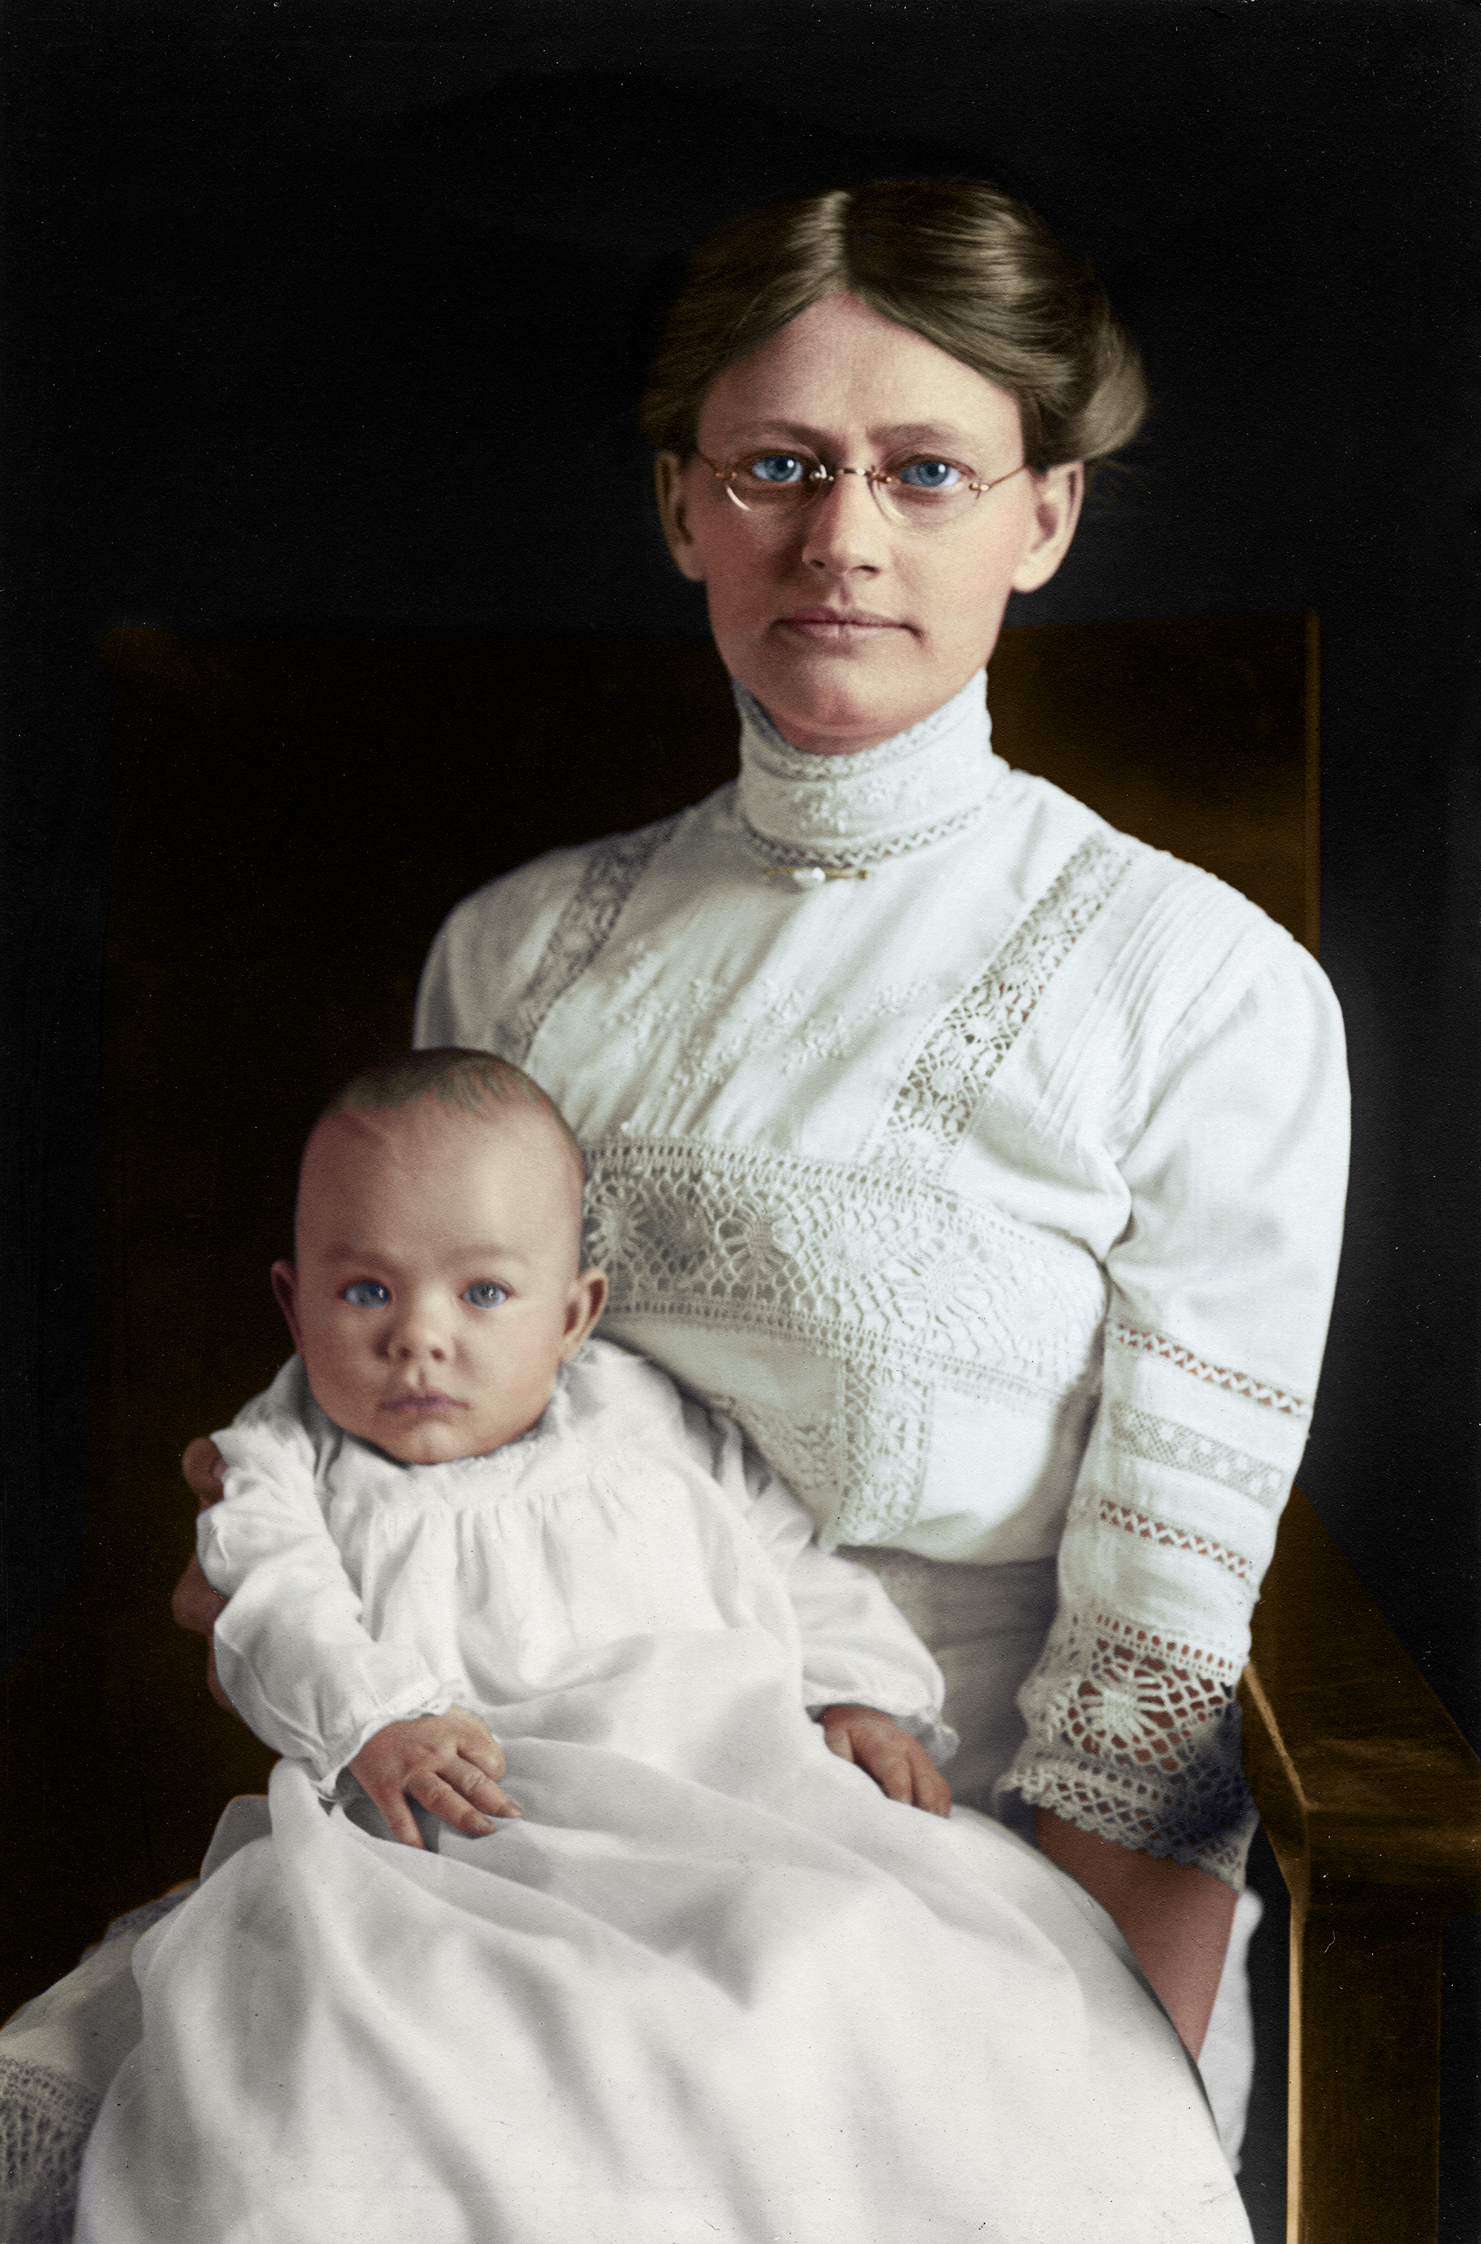 Annette and Finley Houston, Roswell NM, c. 1907